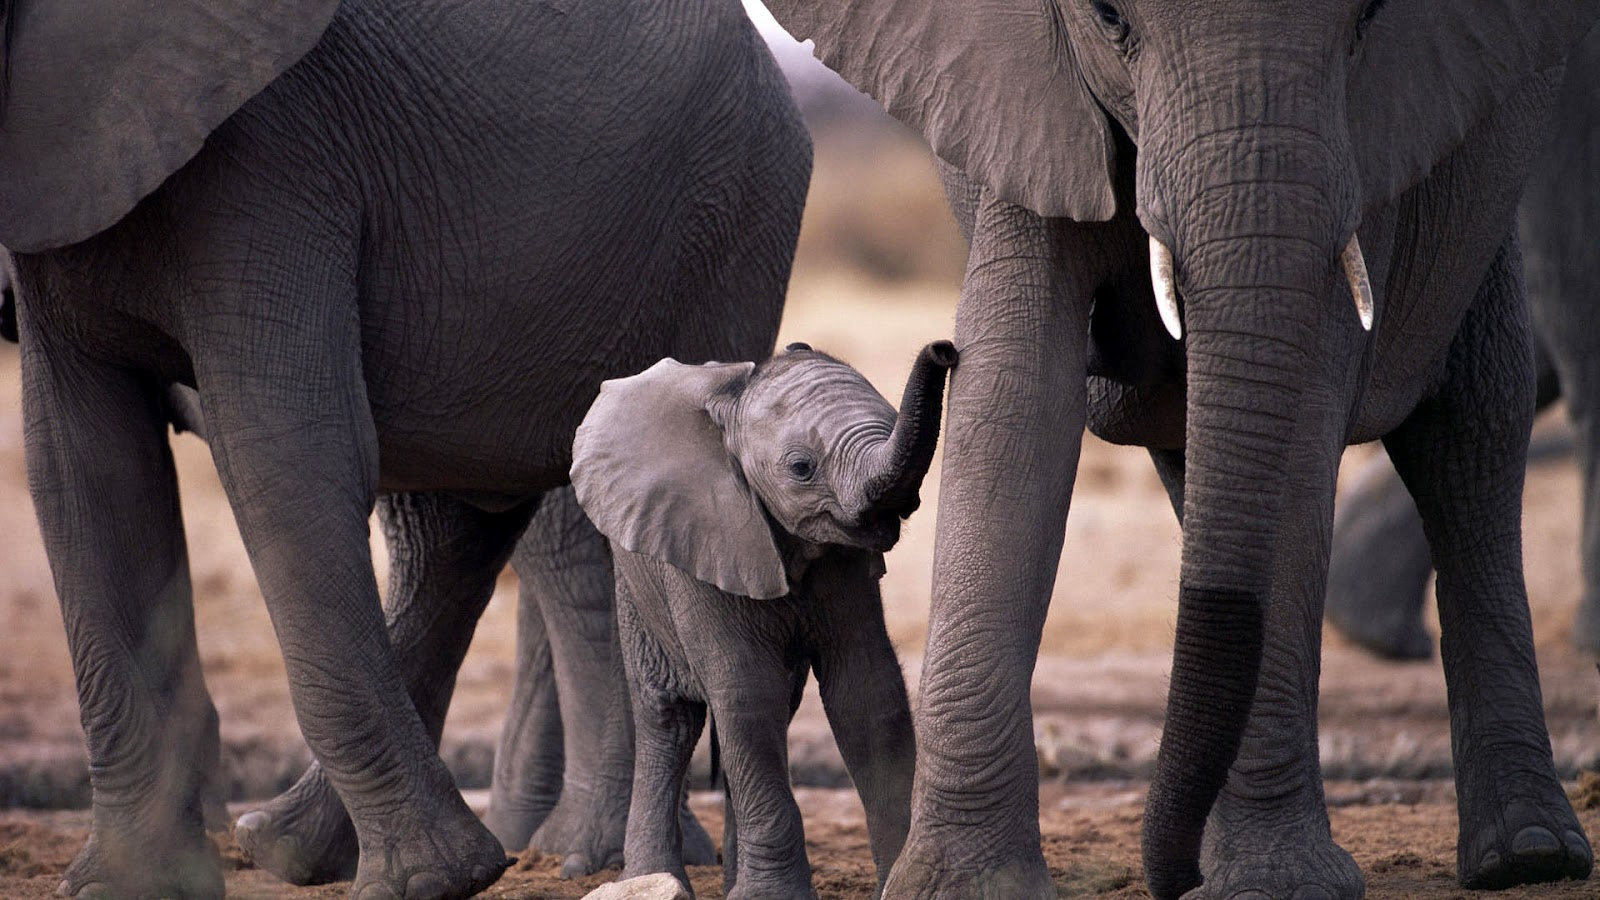 http://4.bp.blogspot.com/-XuucnNEqYCo/UCe3M-zDjNI/AAAAAAAAAY4/FTs844XlMio/s1600/hd-elephants-wallpapers-with-a-baby-elephant-wallpaper-background.jpg